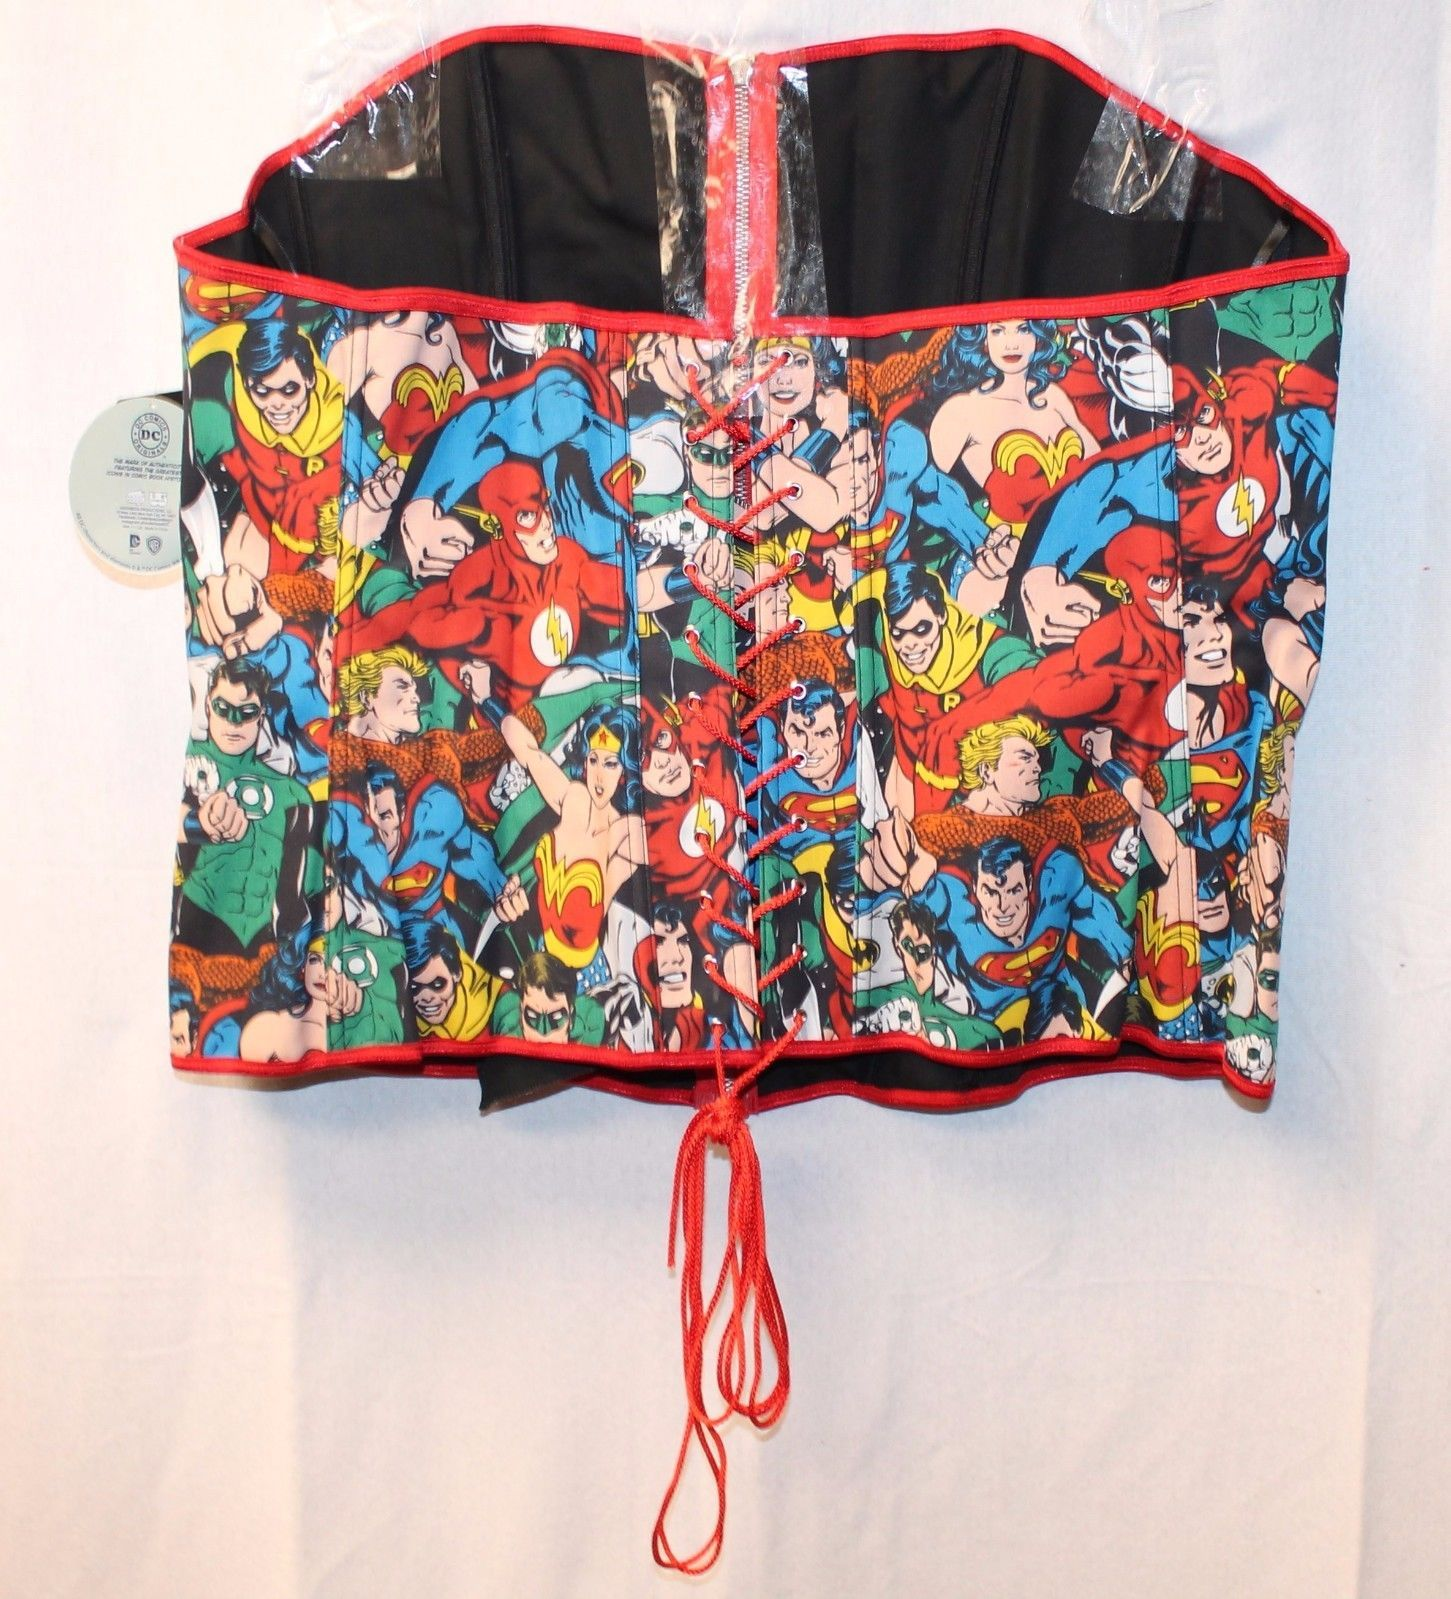 df7ccfb40f NEW TORRID WOMENS PLUS SIZE 4X COSPLAY DC SUPERHERO CORSET BUSTIER WONDER  WOMAN